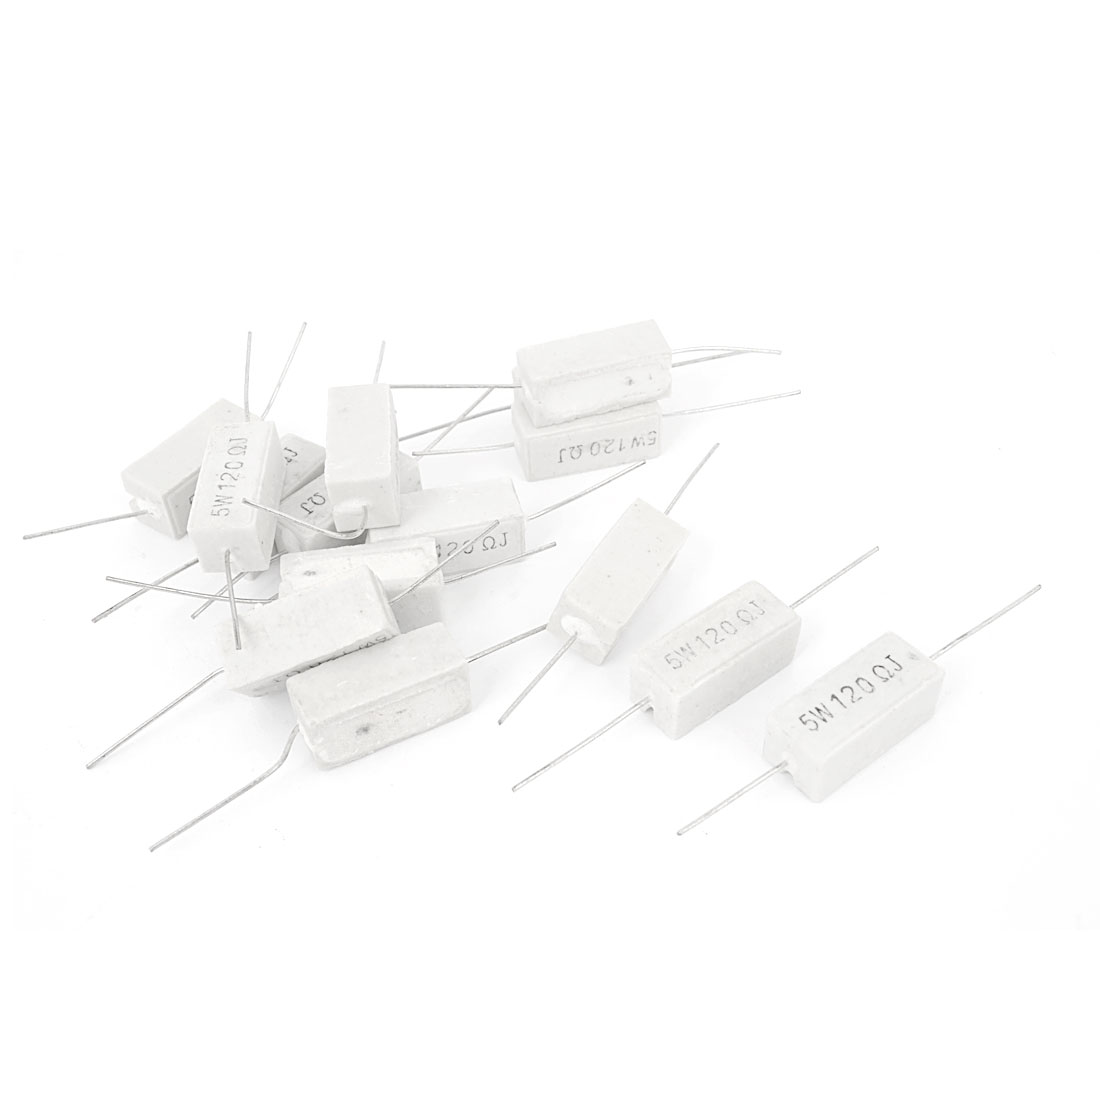 15 Pieces Axial Ceramic Cement Power Resistor 120 Ohm 5W 5% Tolerance